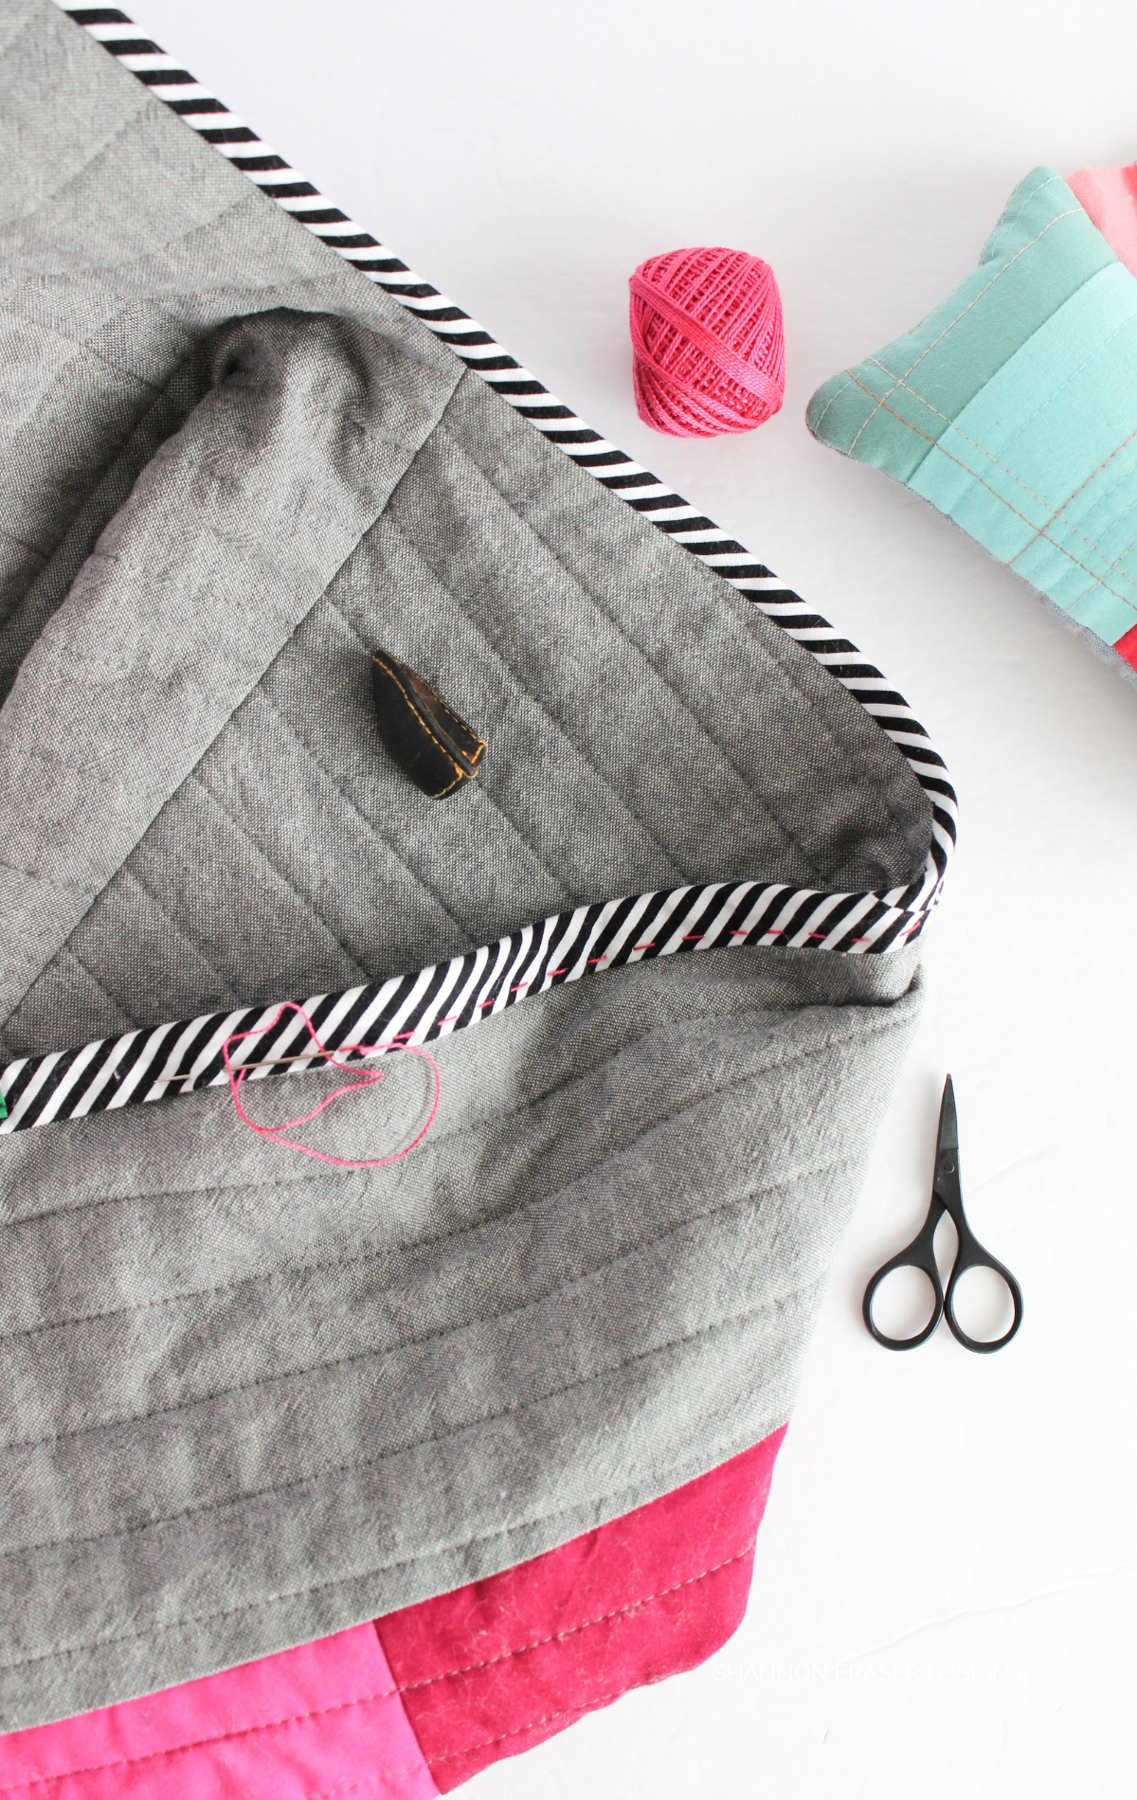 Shannons finishing touches on her Hovea coat | Top 10 tips from a modern quilter's first journey into me-made clothing with Shannon Fraser Designs | Megan Nielsen Patterns Blog